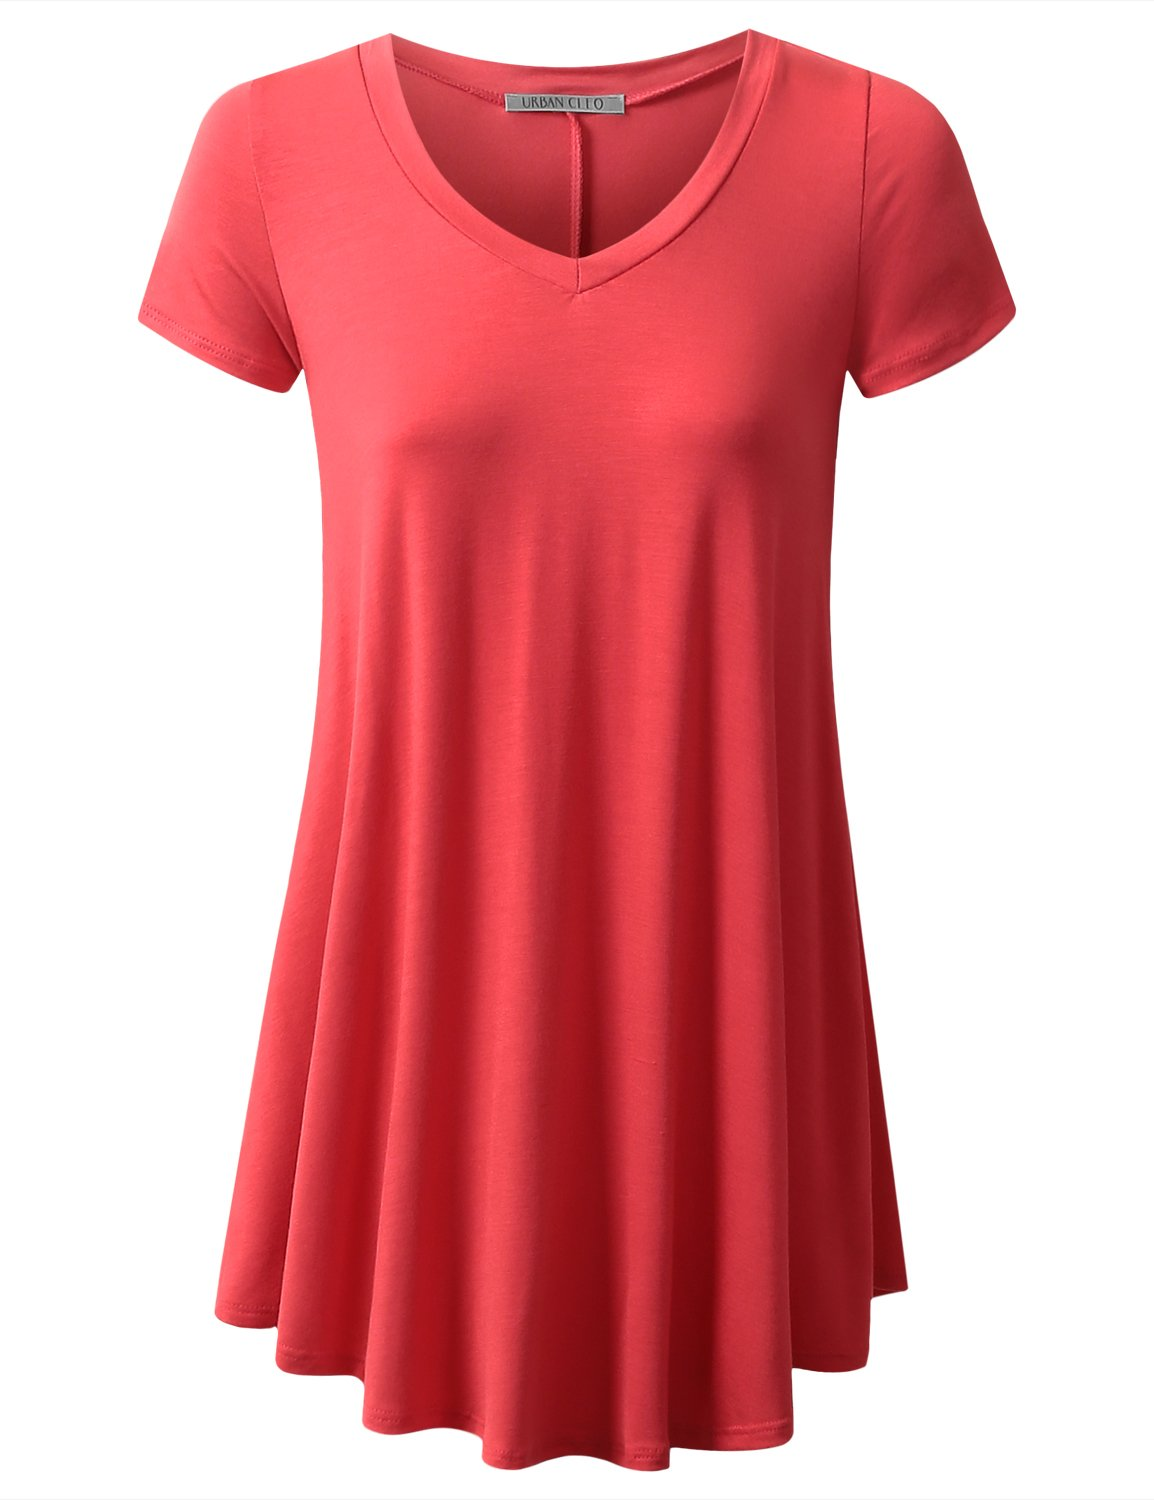 URBANCLEO Womens V-Neck Elong Tunic Top Mini T-Shirt Dress Coral XLarge